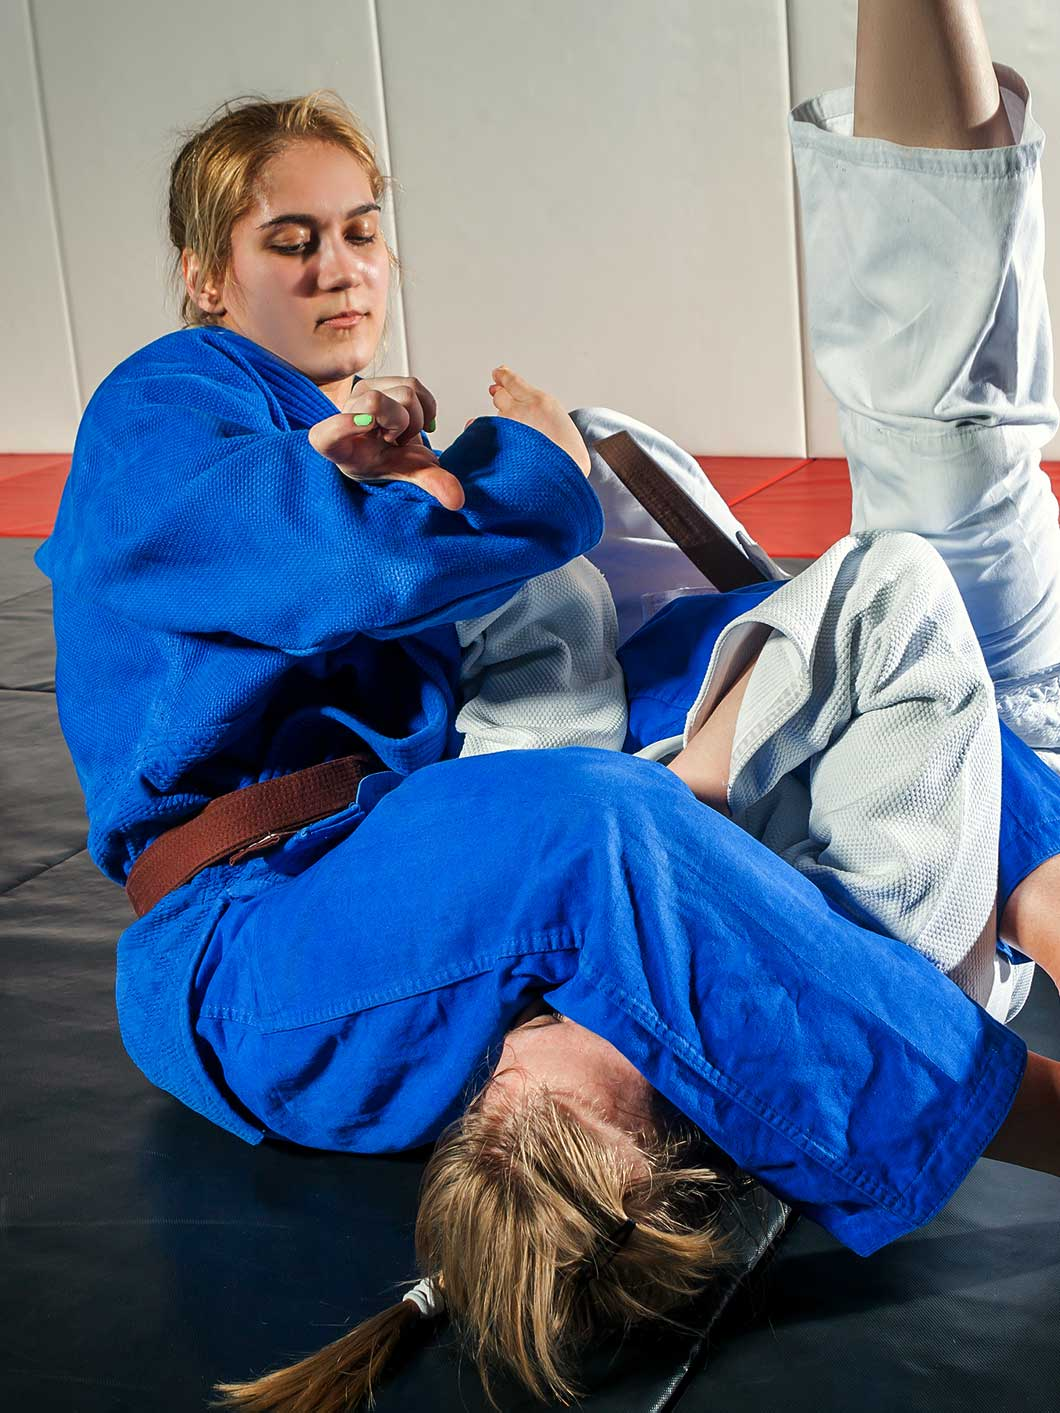 judo in Fort Lauderdale, Fl